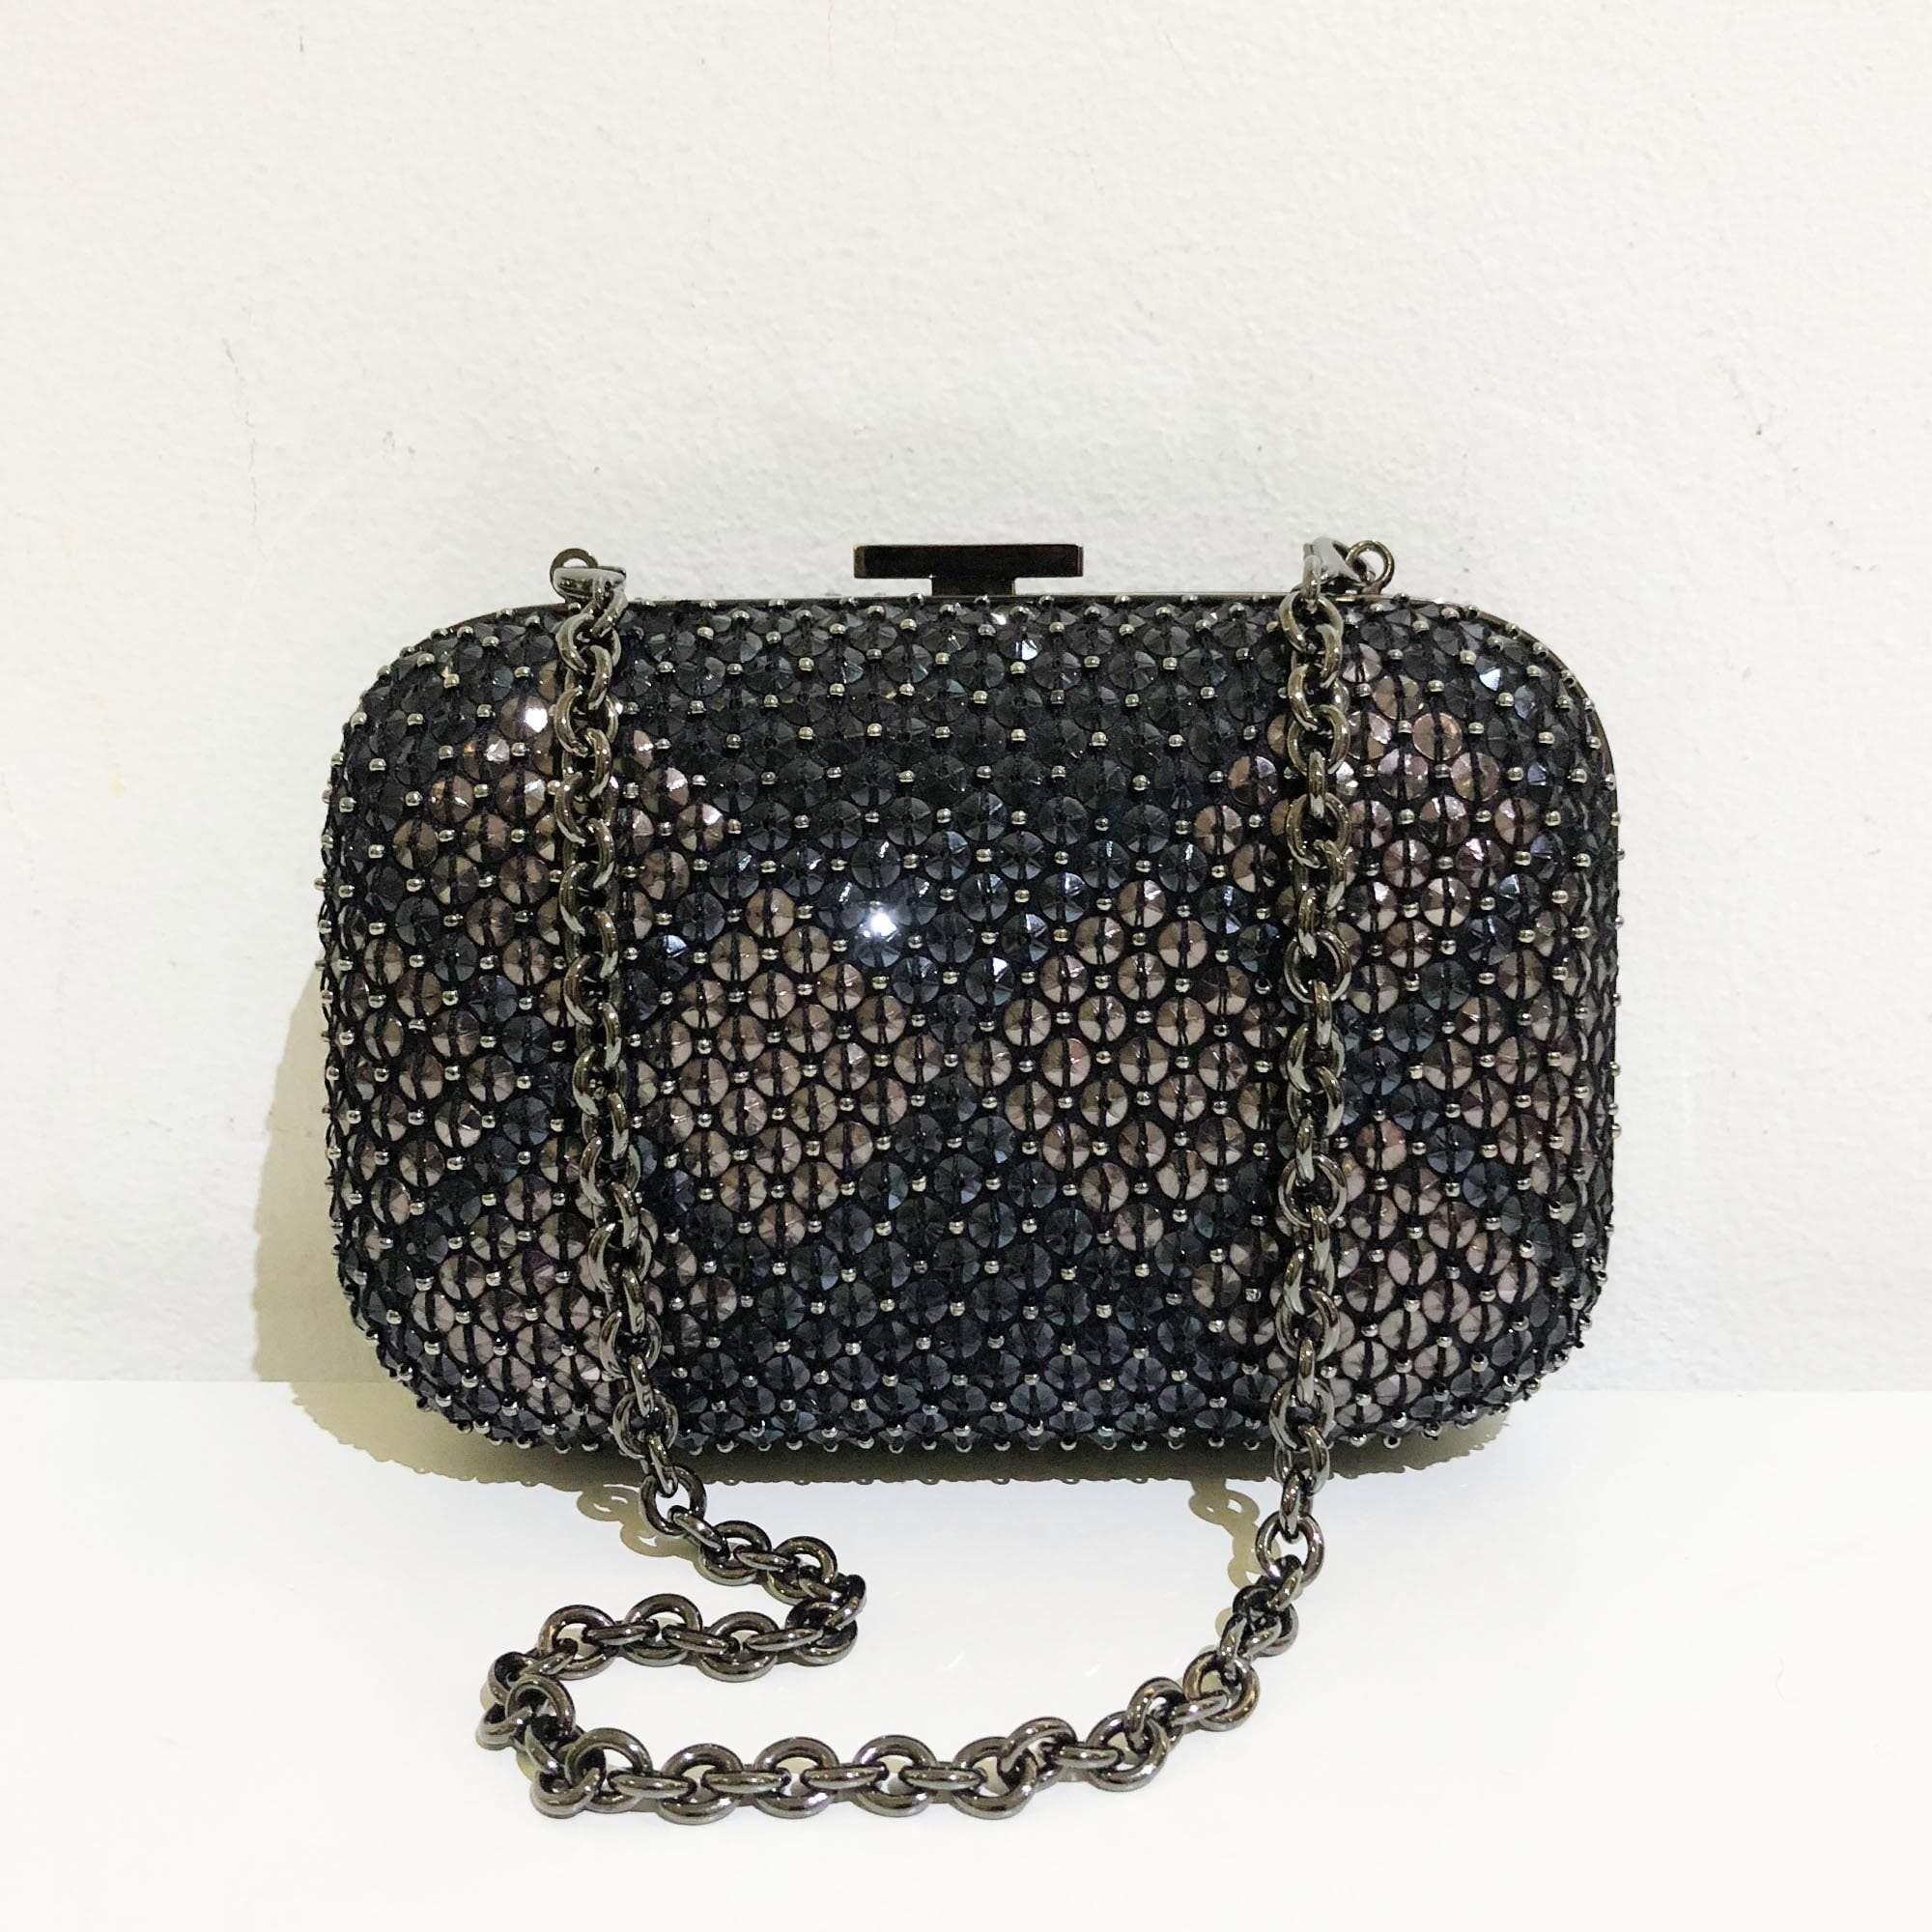 Gucci Studded Clutch Purse with Chain